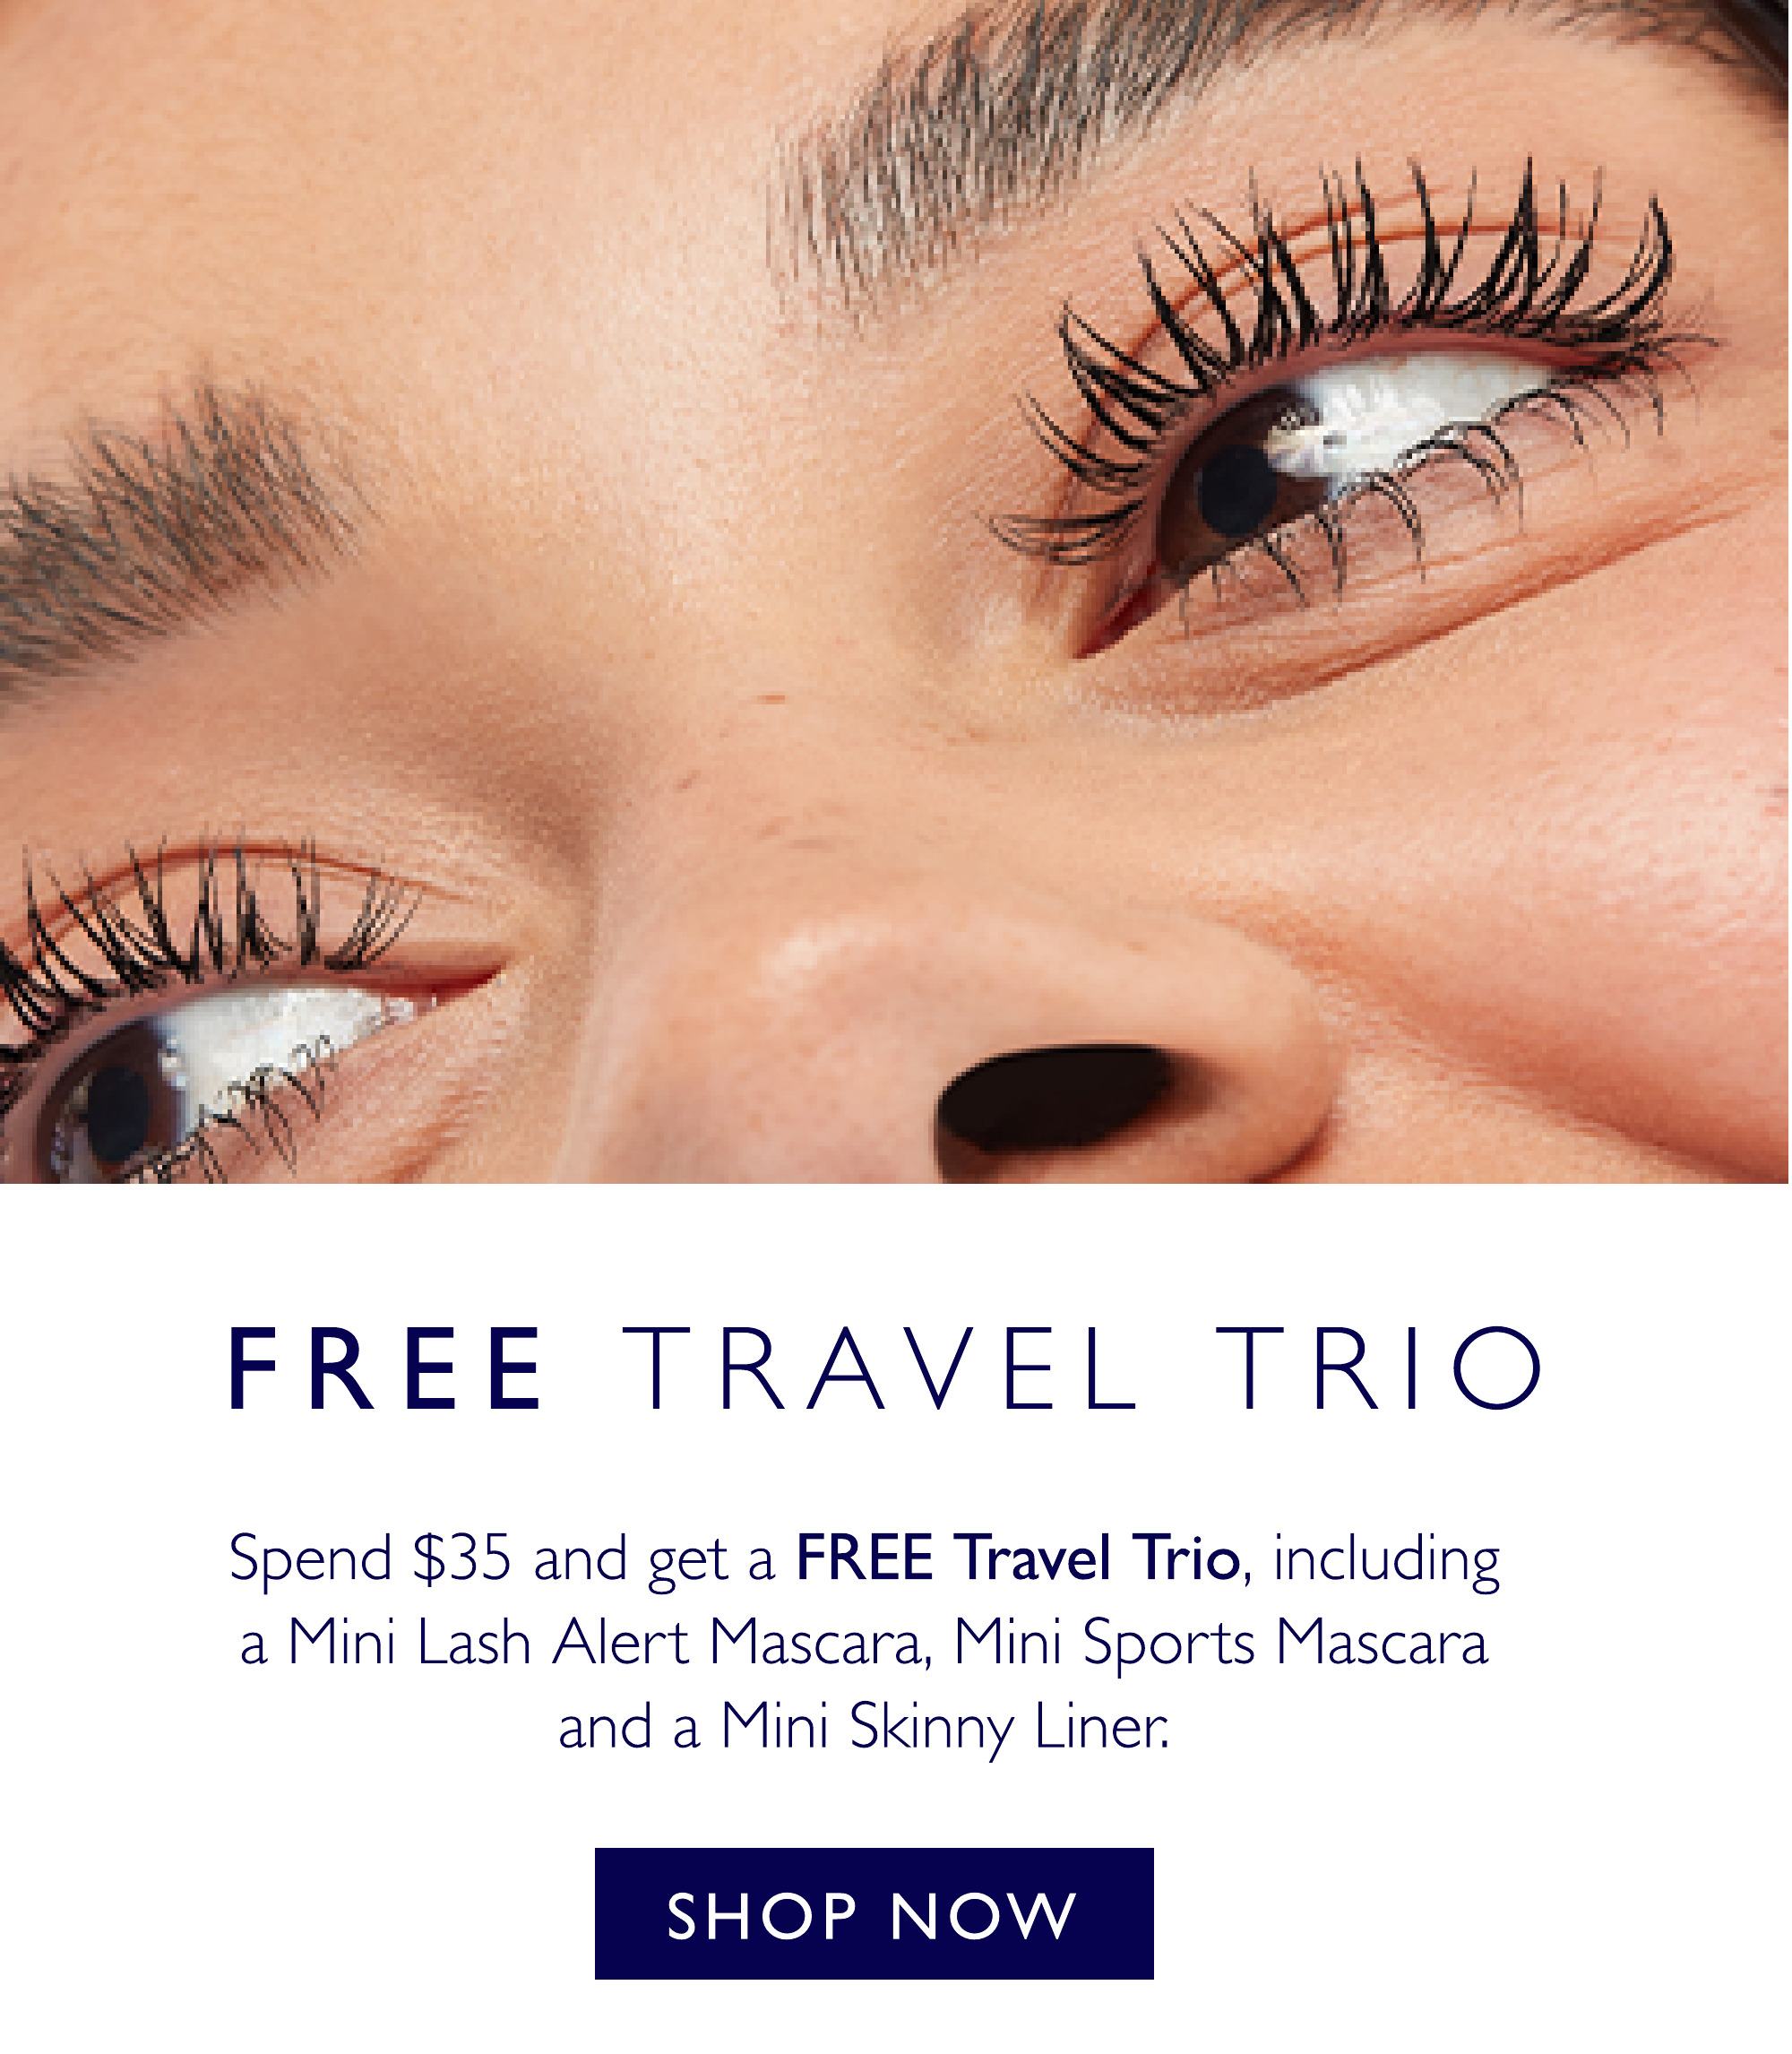 Receive a free travel trio when you spend $35